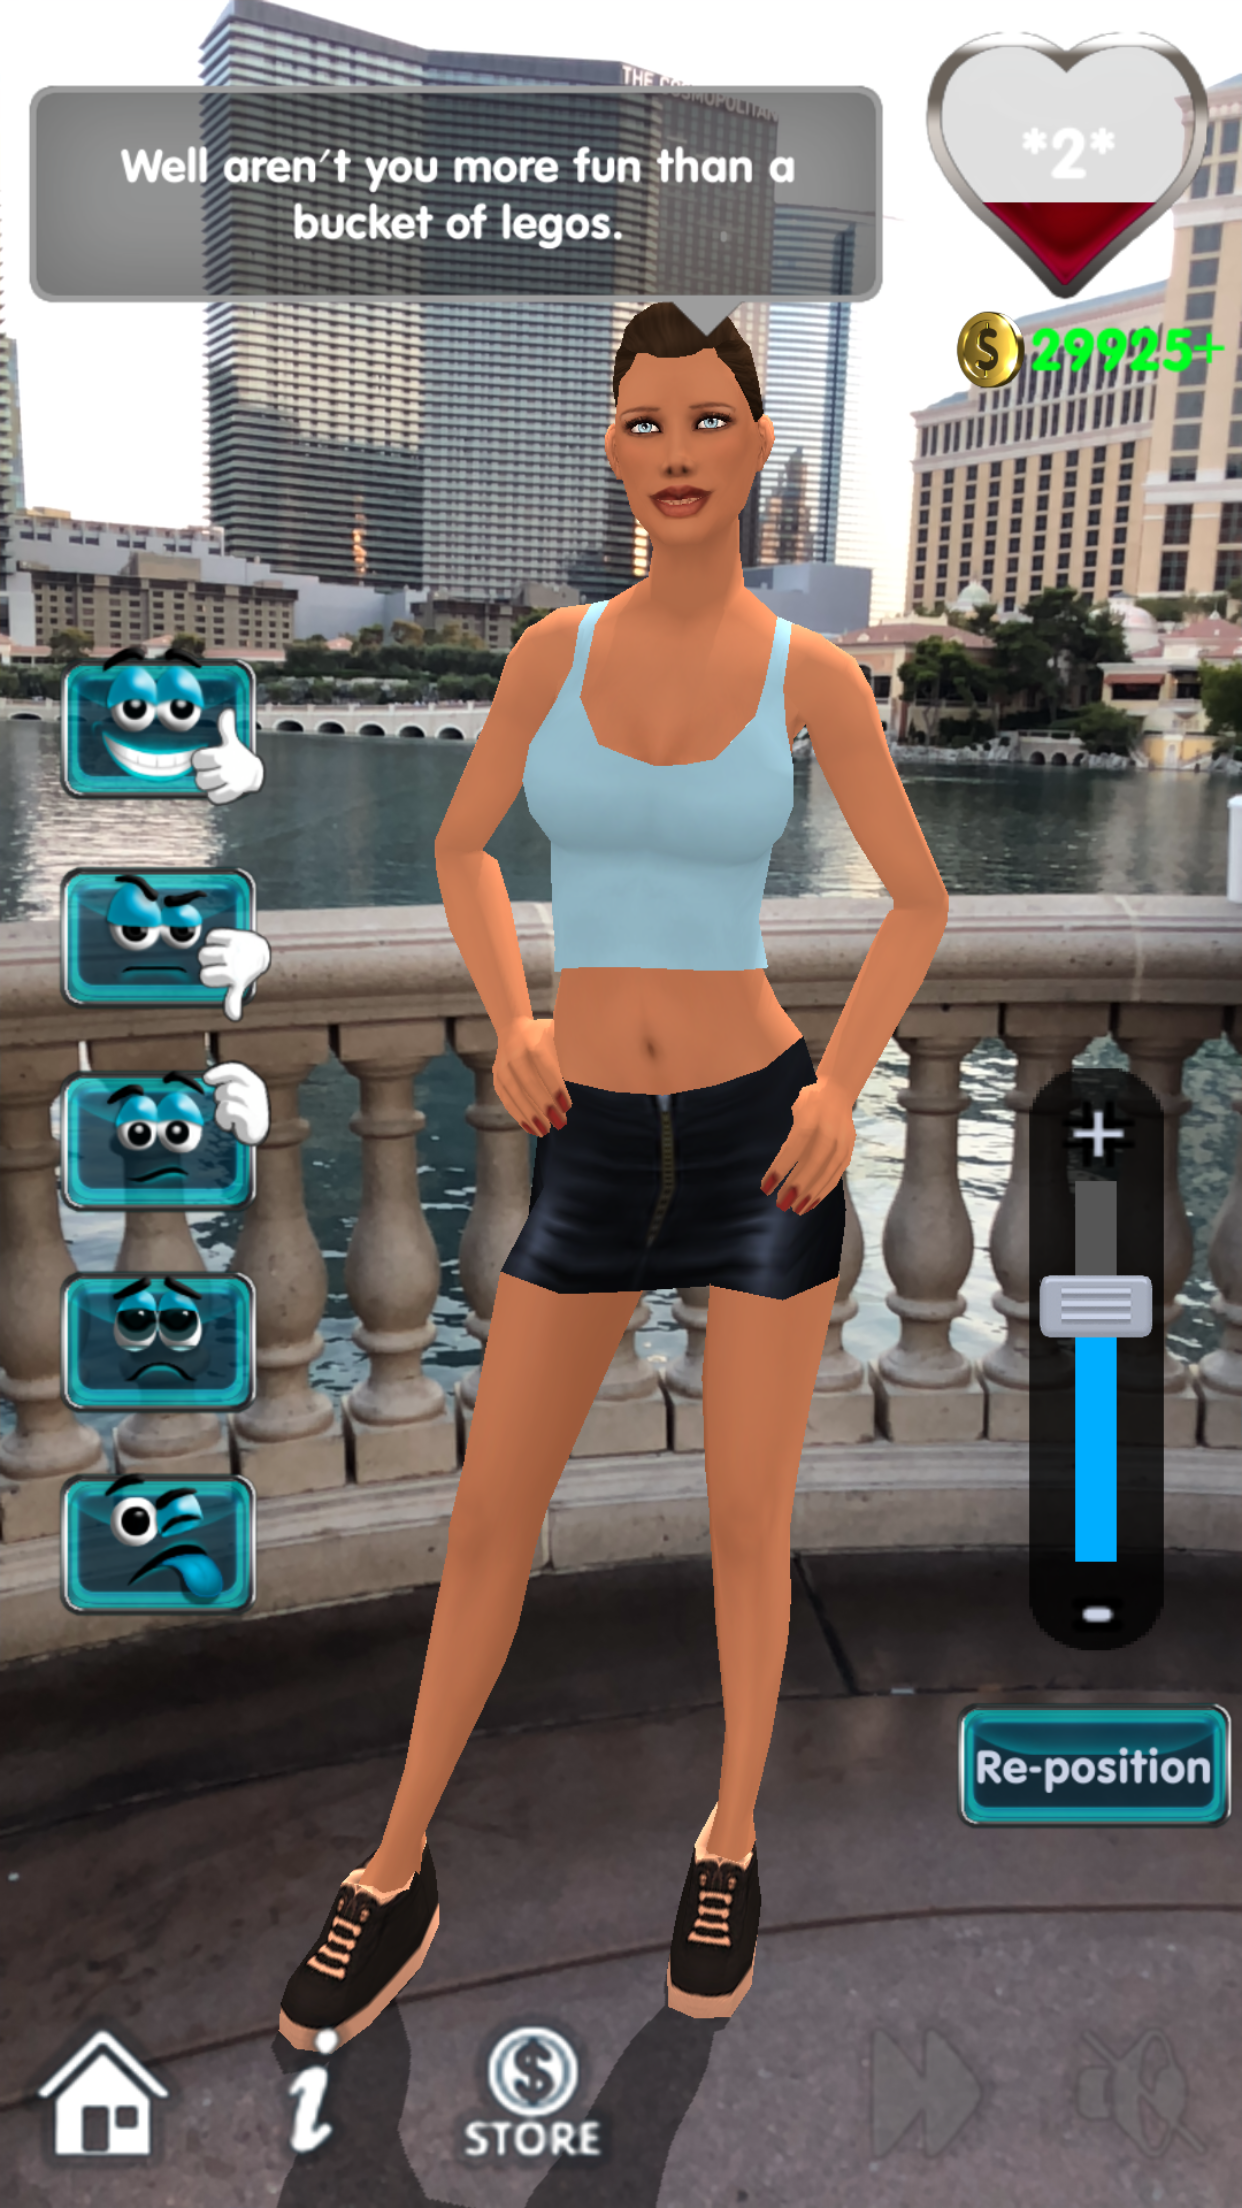 Date Virtual Girls in Augmented Reality on your iPhone Image